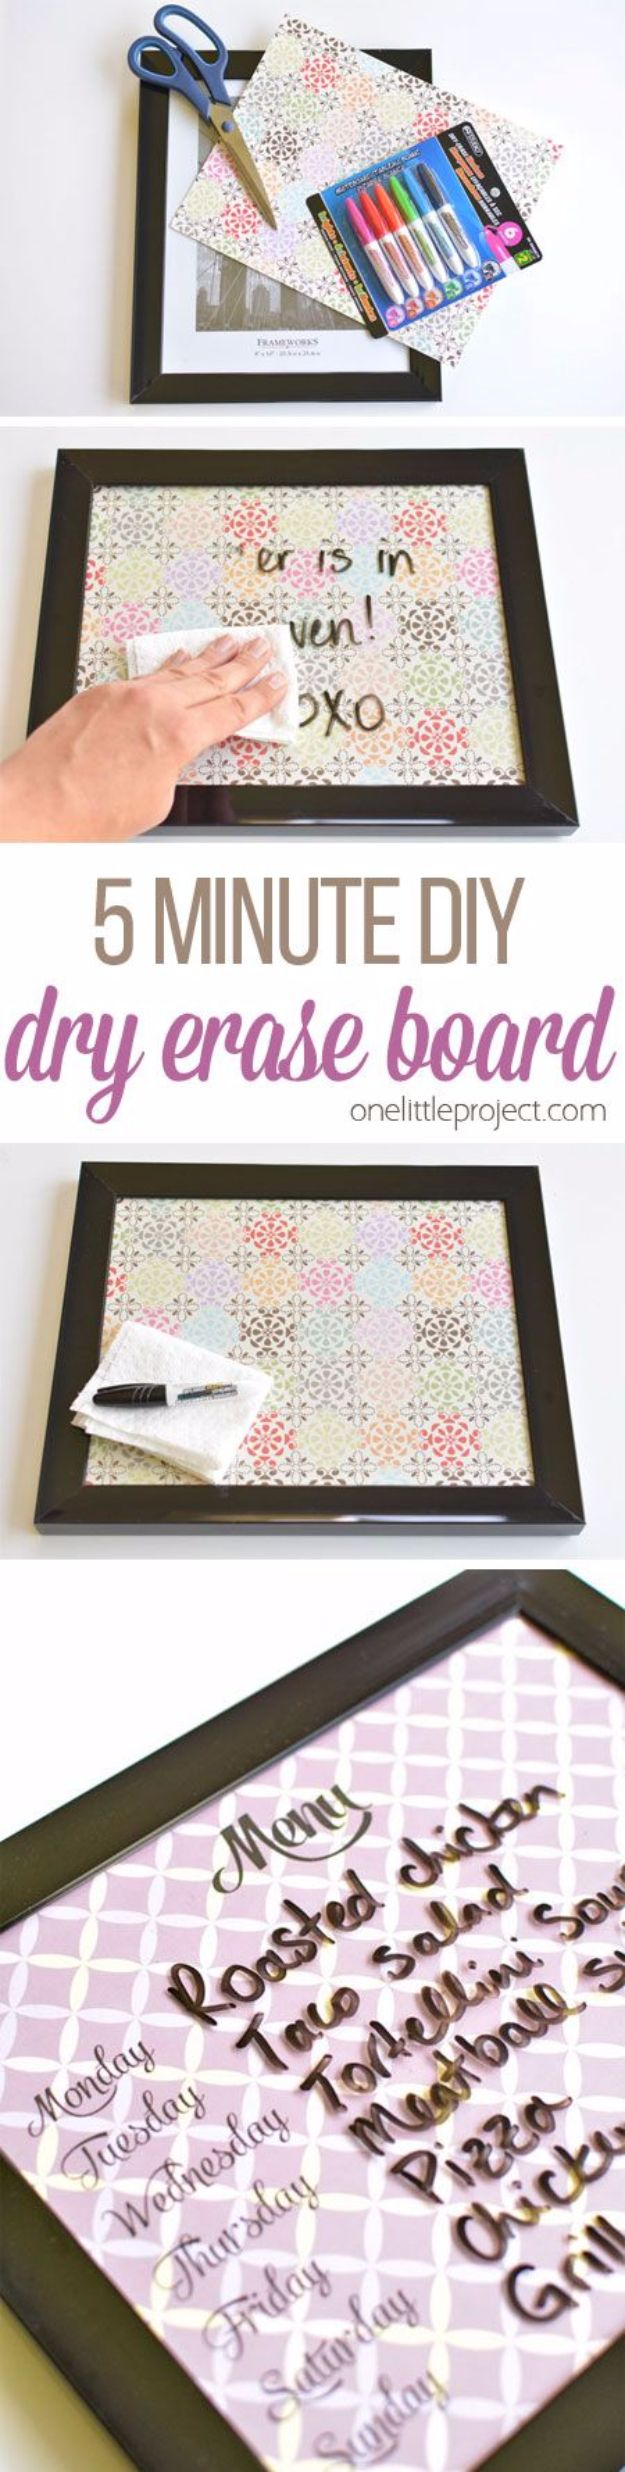 50 Easy Crafts To Make And Sell For Teens Diy Projects For Teens